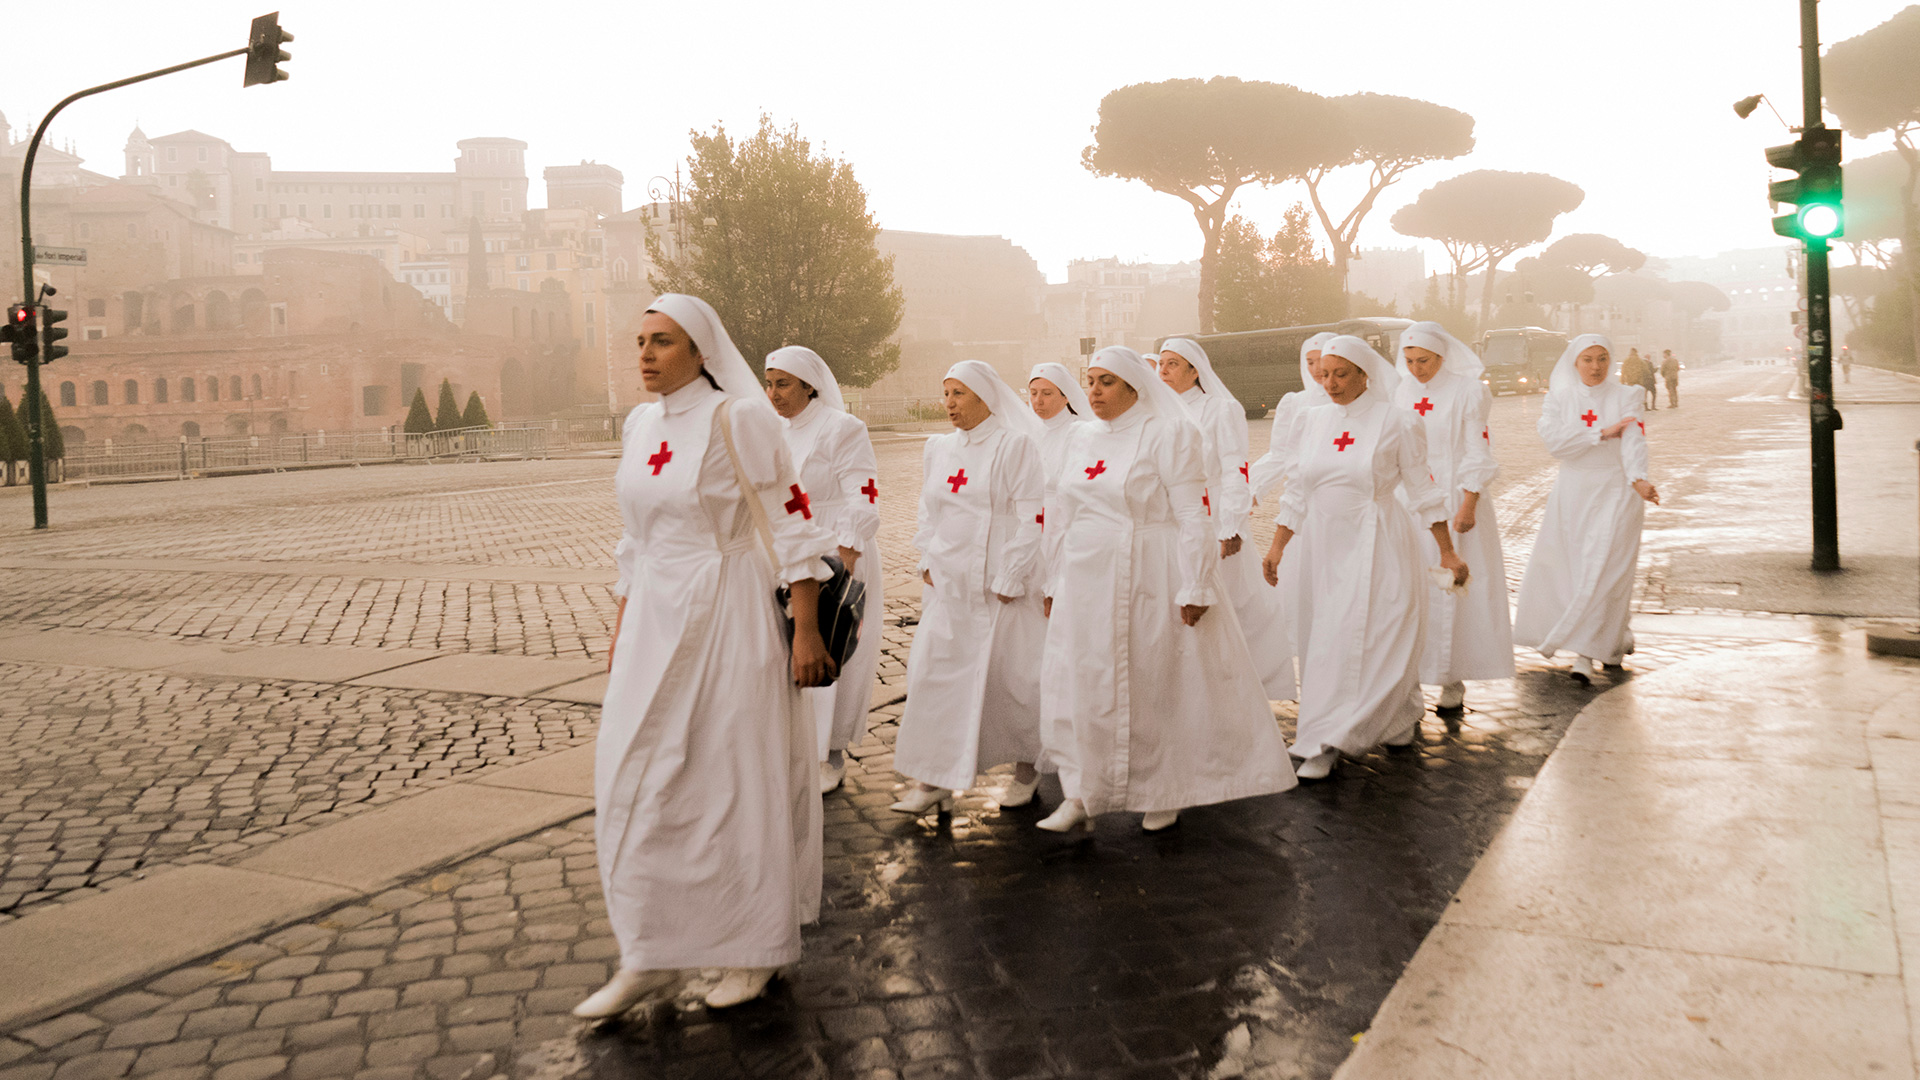 Sister nurses marching in Rome